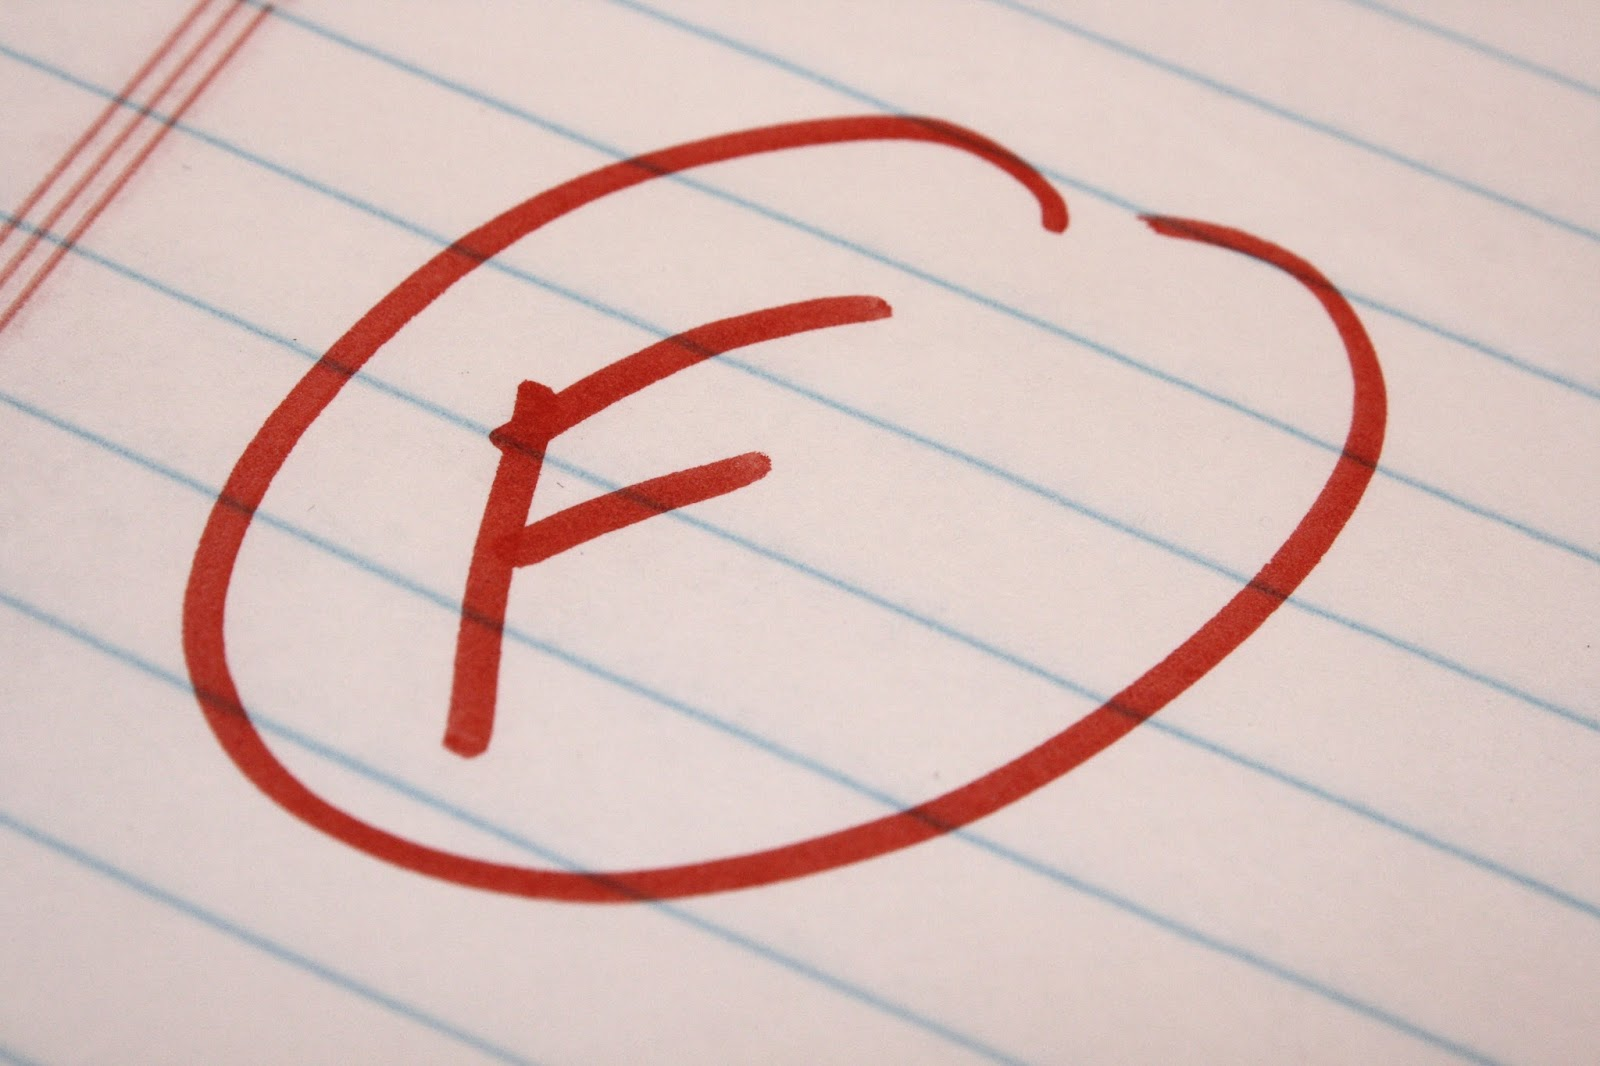 What would you give my essay in a letter grade?